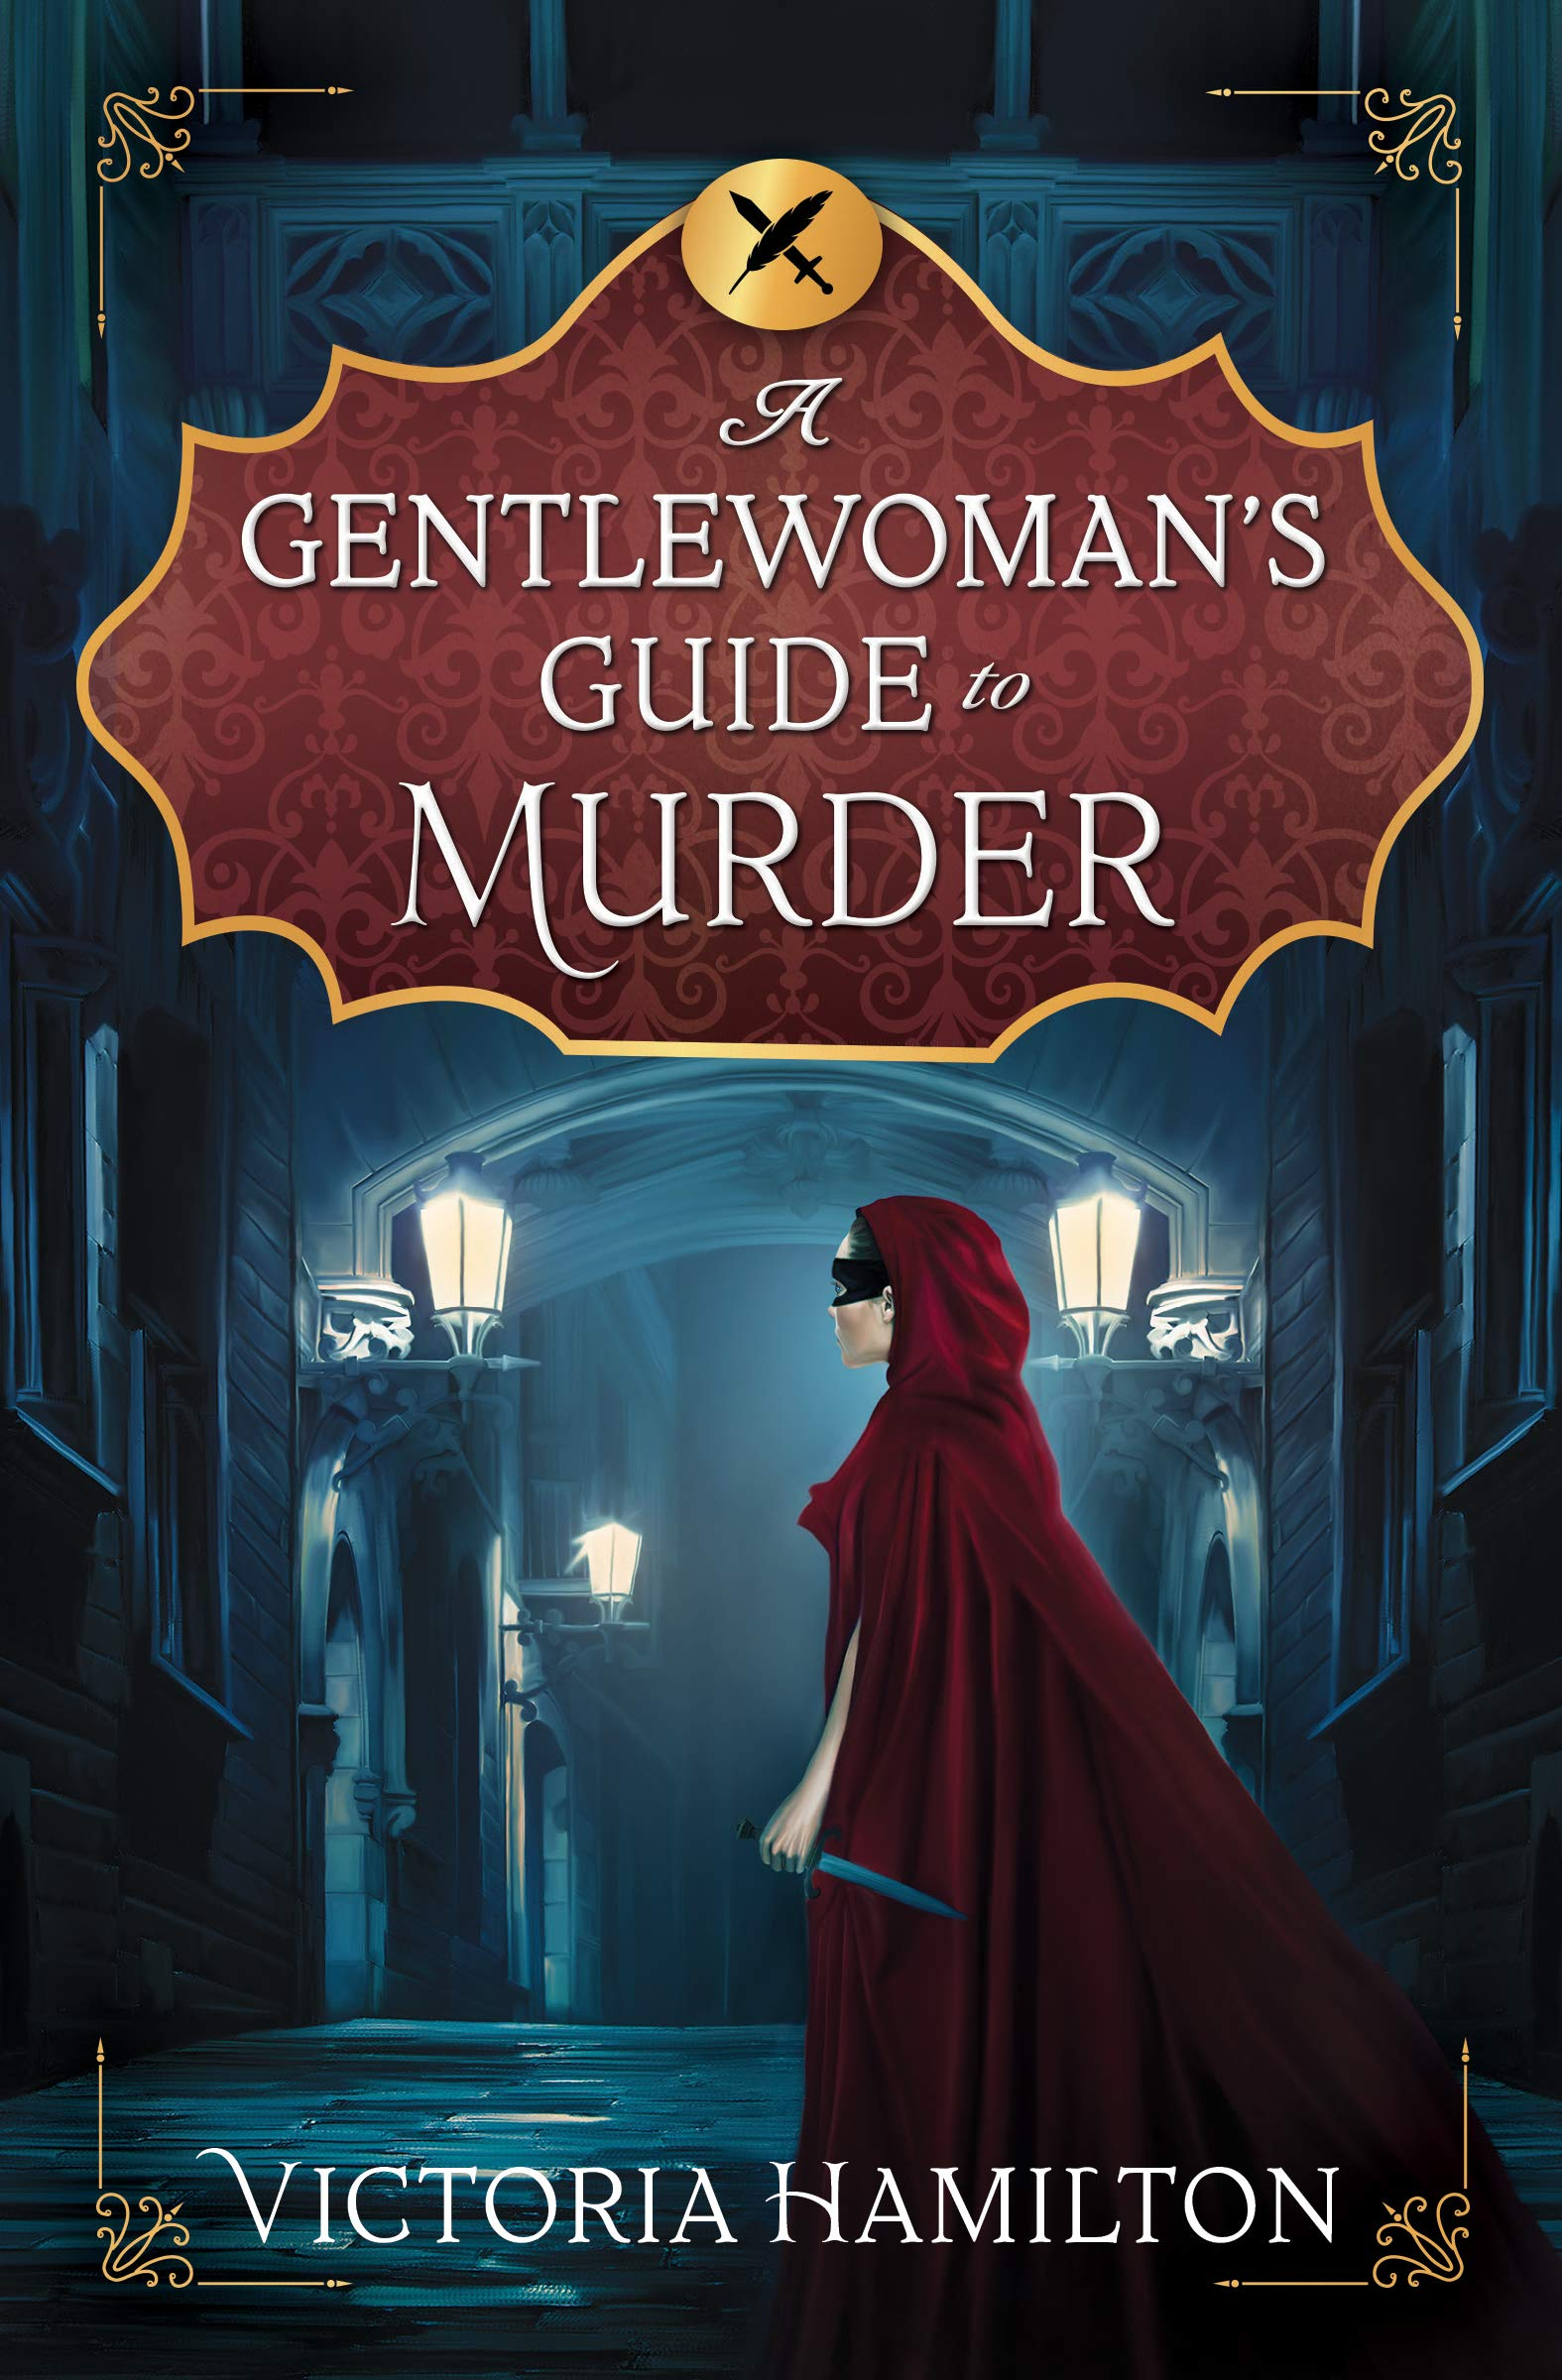 Buy A Gentleman's Guide to Murder (Gentlewoman's Guide to Murder) Book  Online at Low Prices in India | A Gentleman's Guide to Murder  (Gentlewoman's Guide to Murder) Reviews & Ratings - Amazon.in